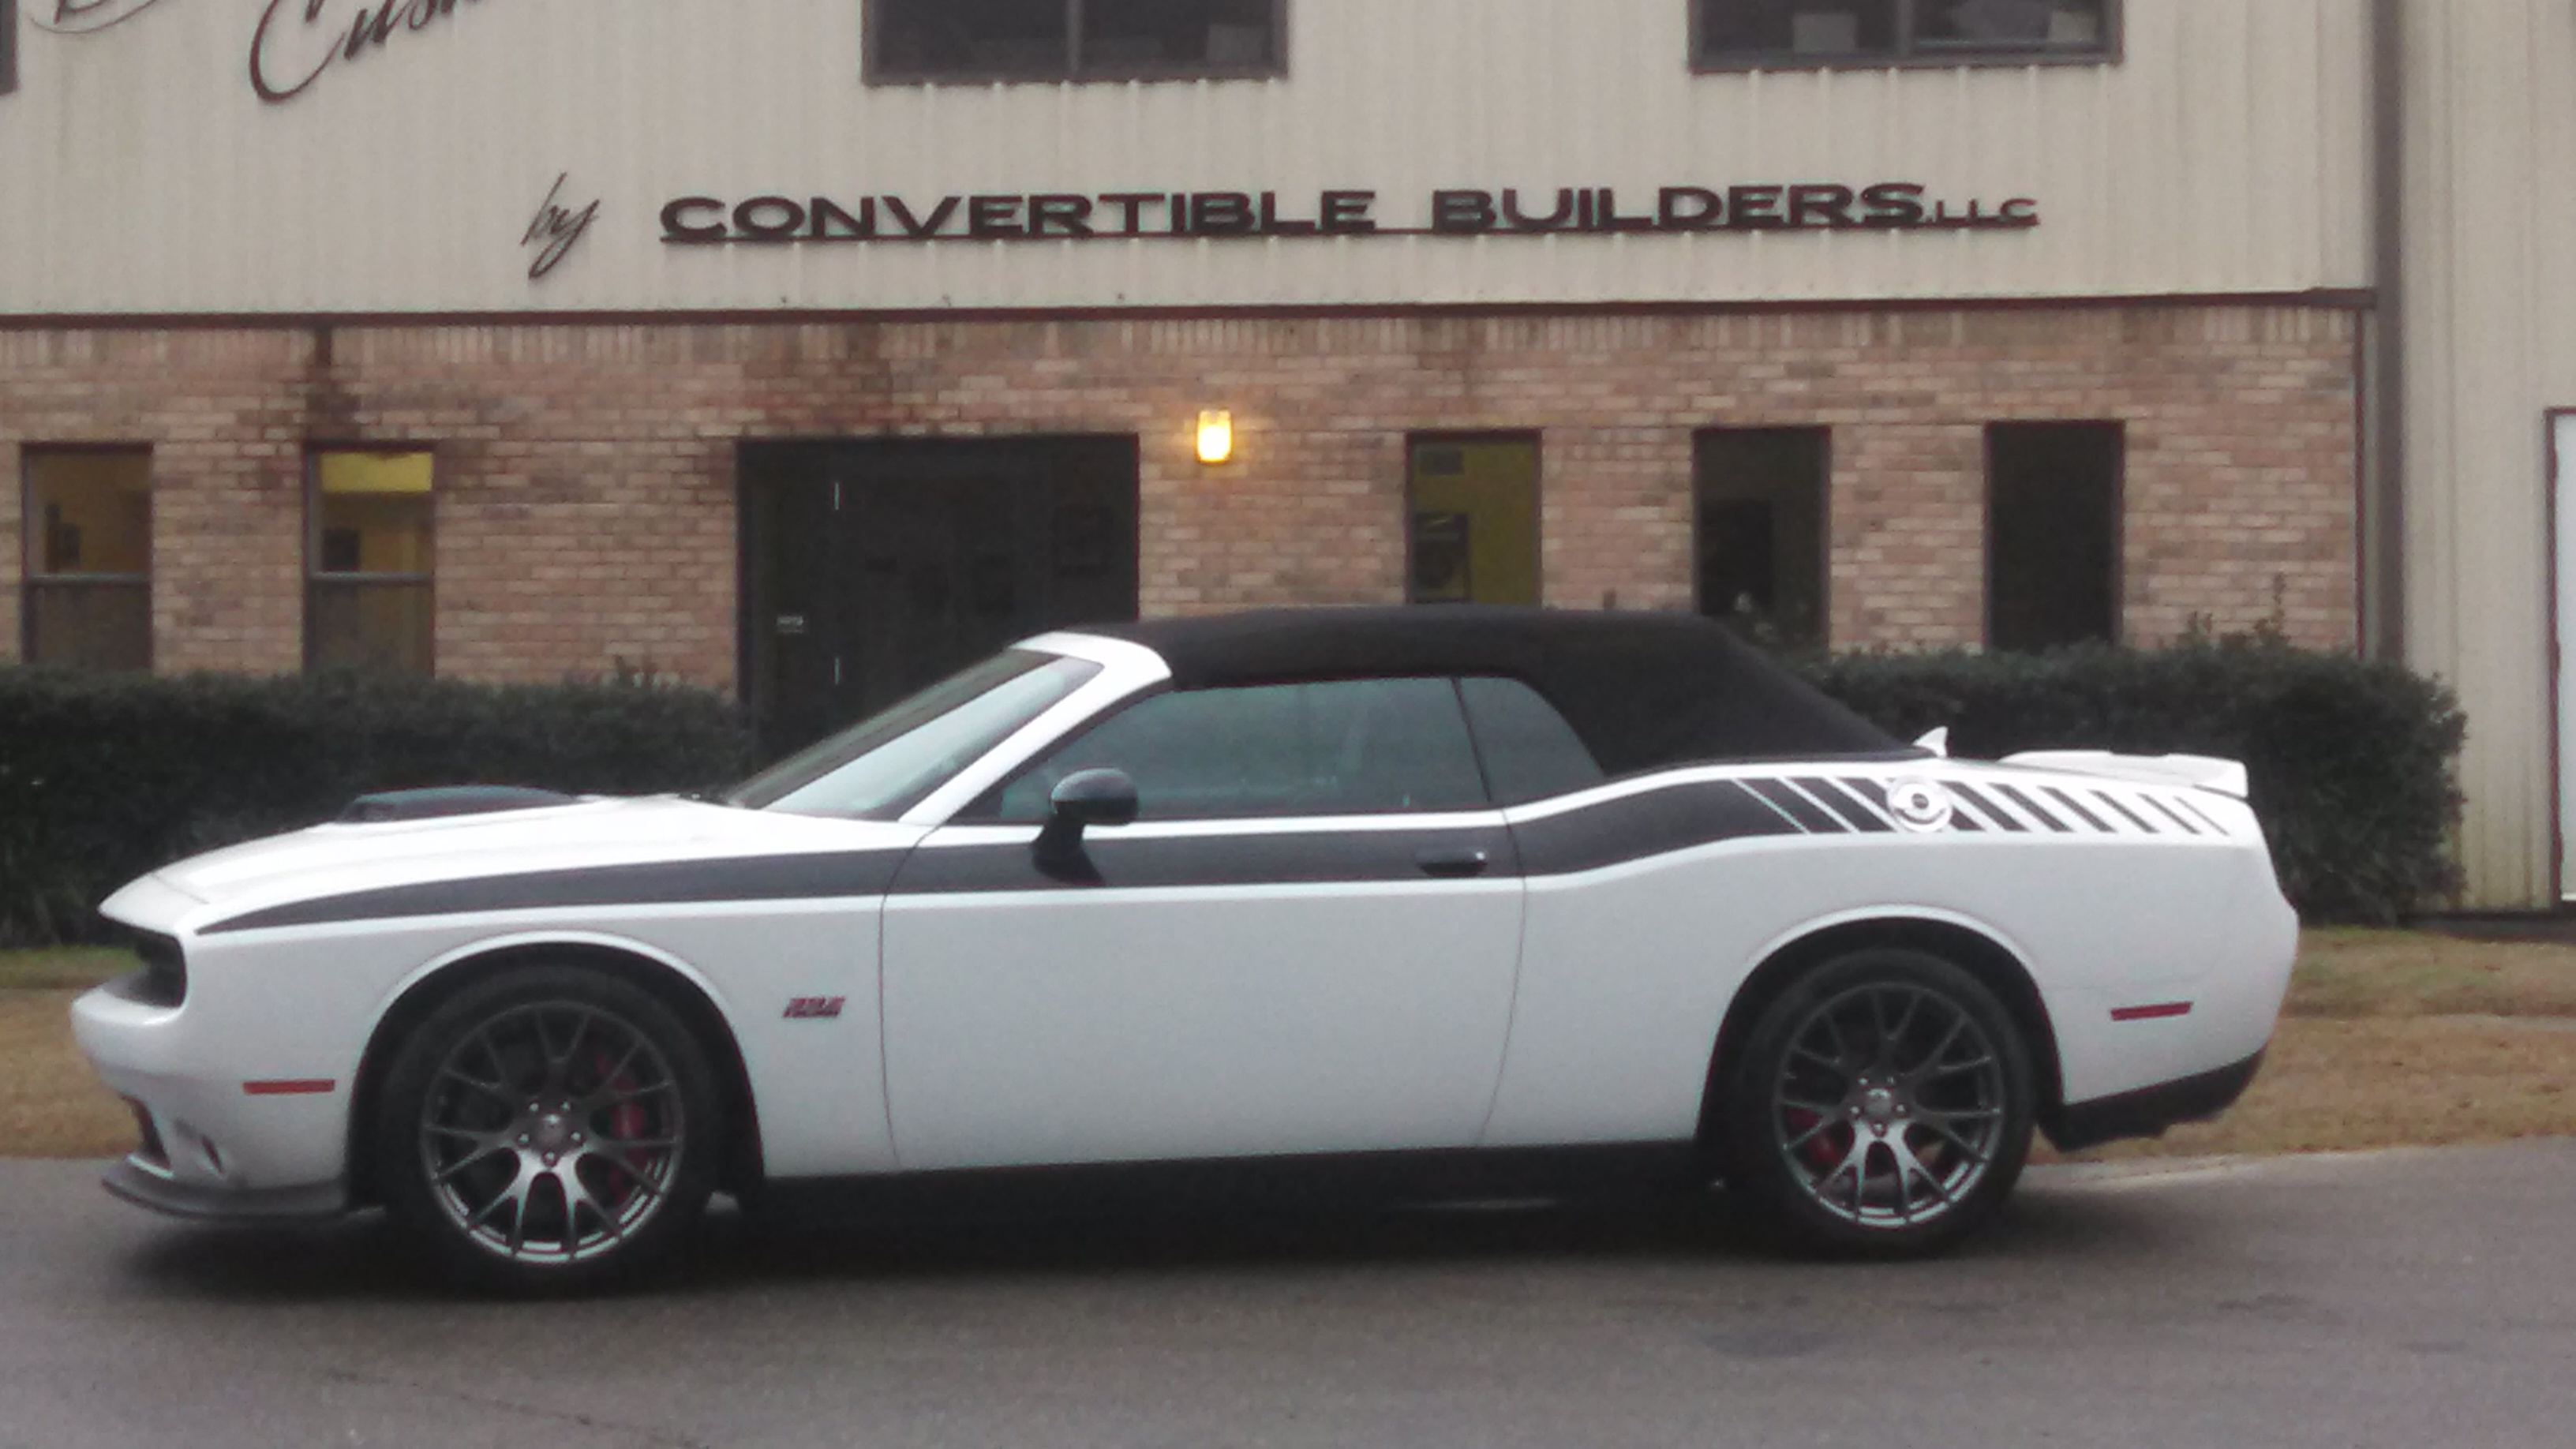 White Dodge Challenger Convertible